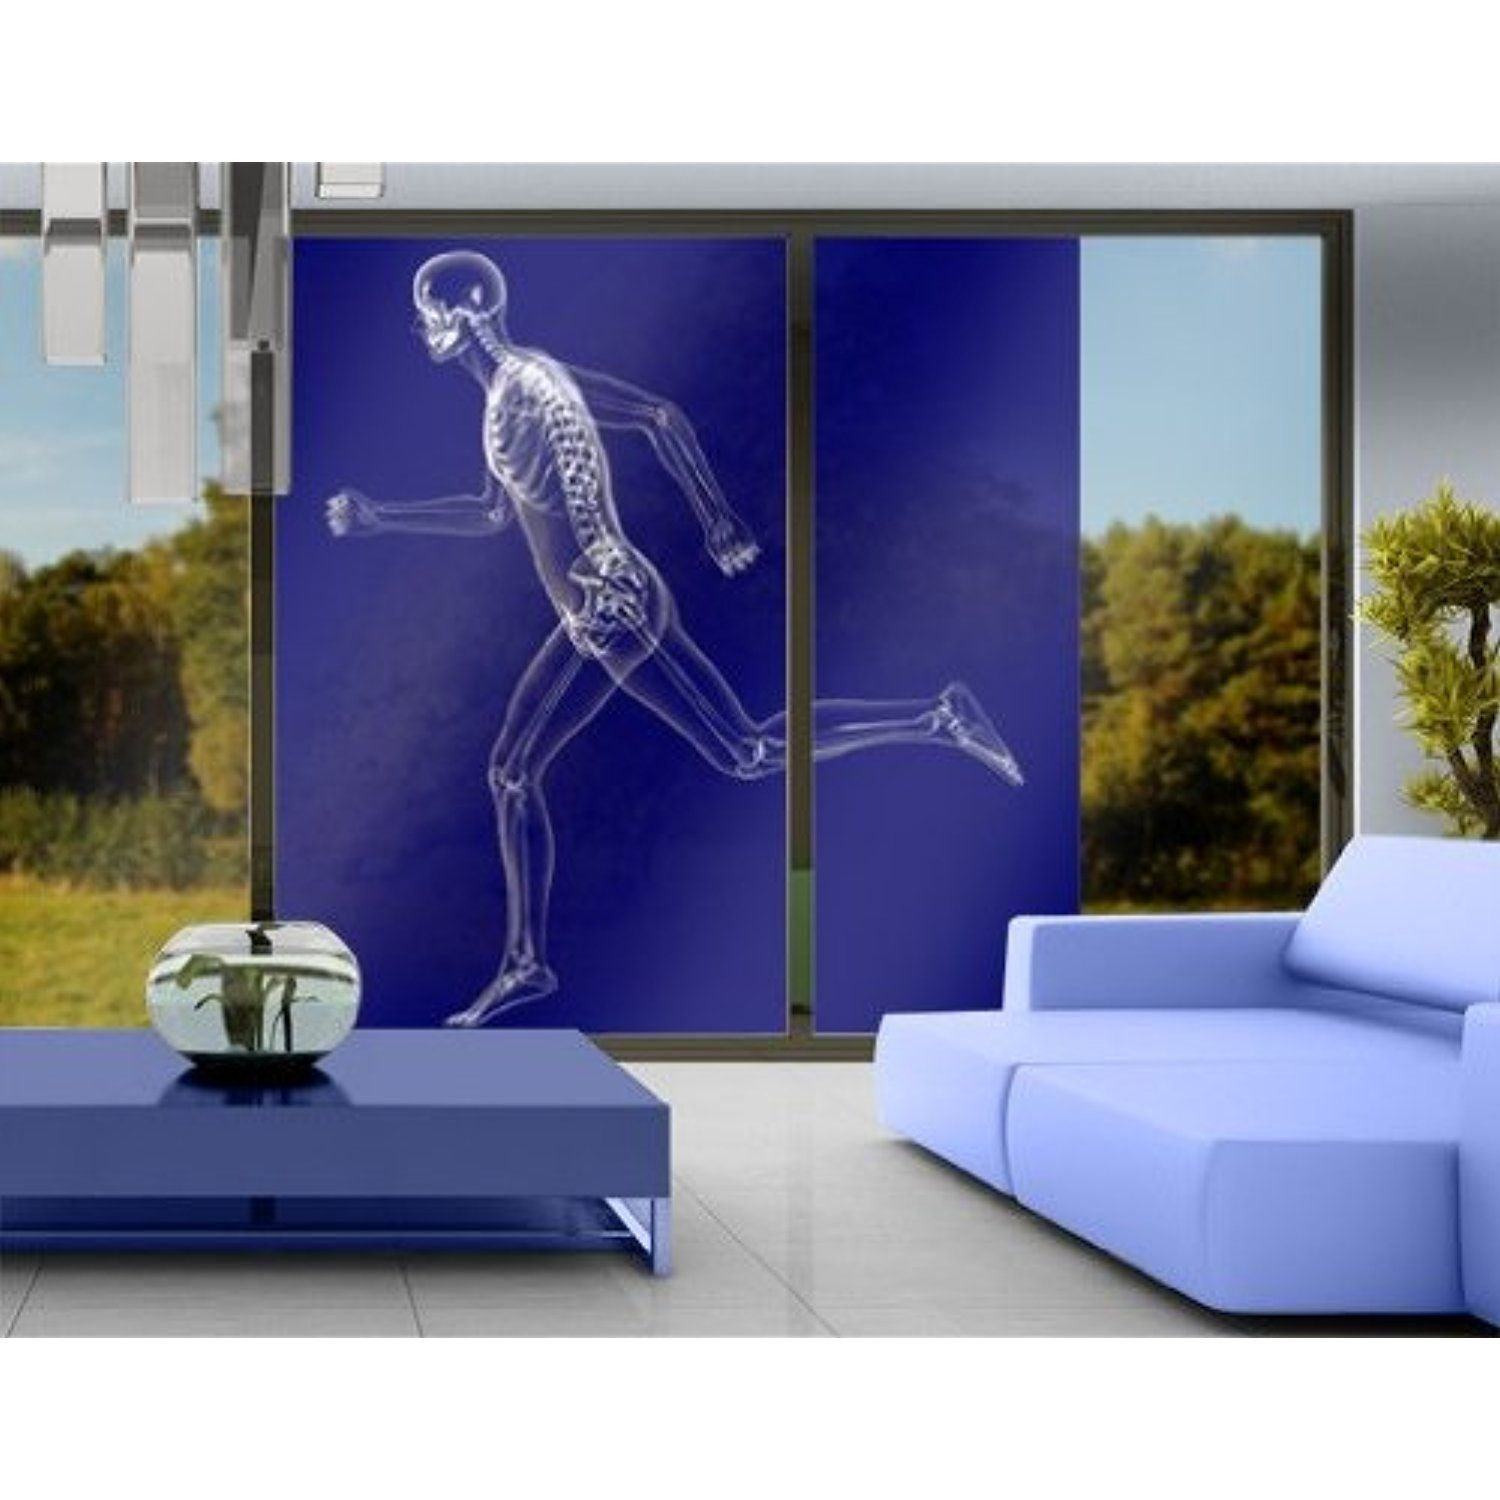 Déco Murale Diy Window Mural Glassy Human In Blue Window Sticker Window Film